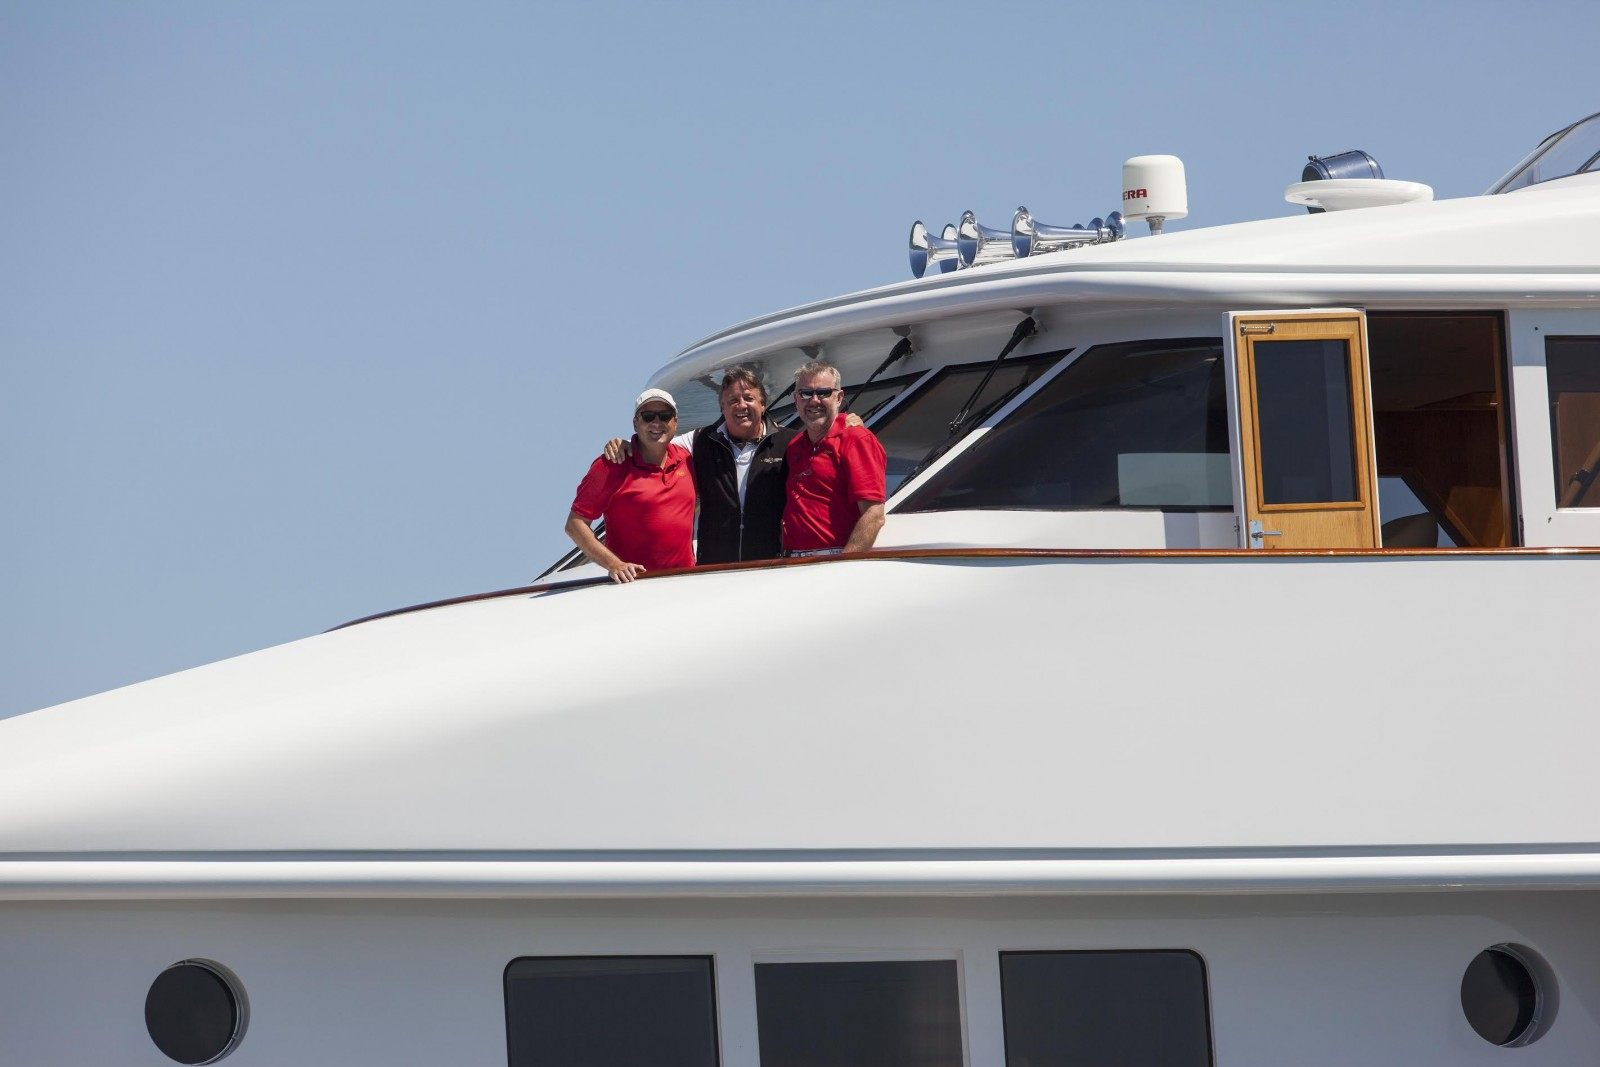 Capt. Ken Bracewell (left) hands over M/Y Rena to the yacht's new master, Capt. Harry Molenaar in Newport, RI in June of 2014. David Lacz (center) brokered the deal. The yacht escorted the whaling ship Charles W. Morgan from Mystic to Newport, Connecticut on the maiden voyage after re-launch. PHOTO BY BILLY BLACK